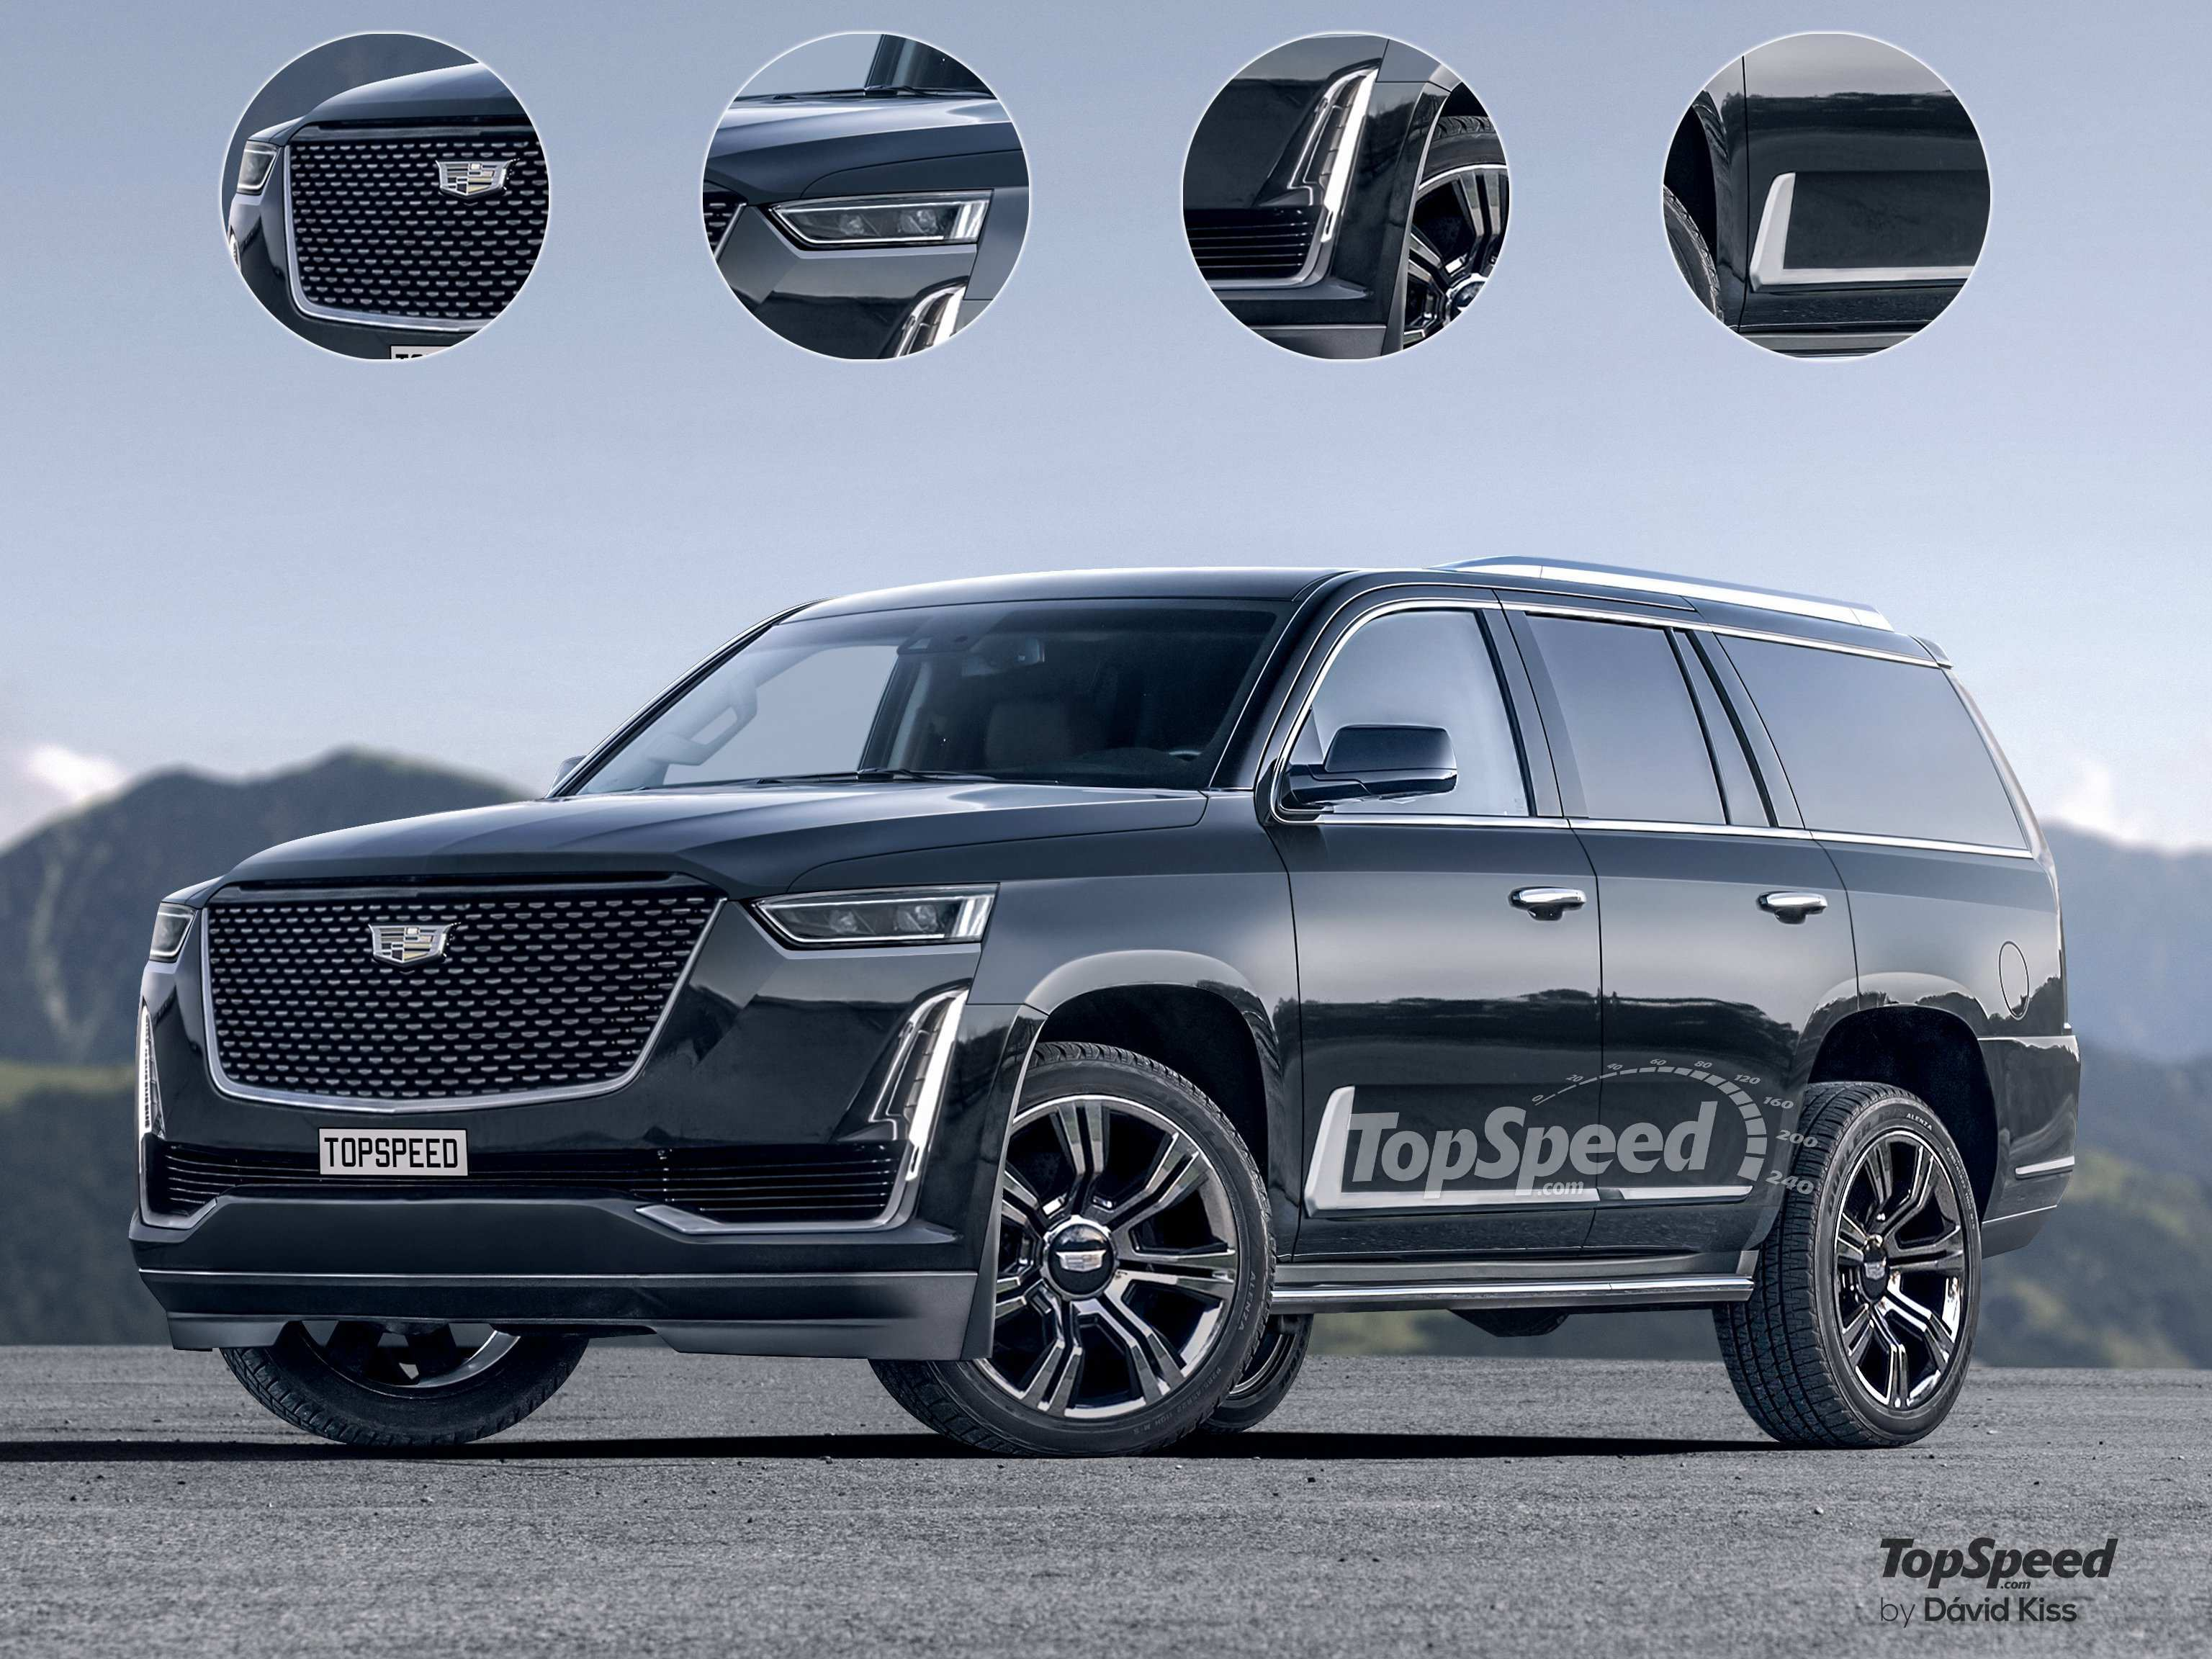 52 Great 2020 Cadillac Escalade For Sale Exterior by 2020 Cadillac Escalade For Sale